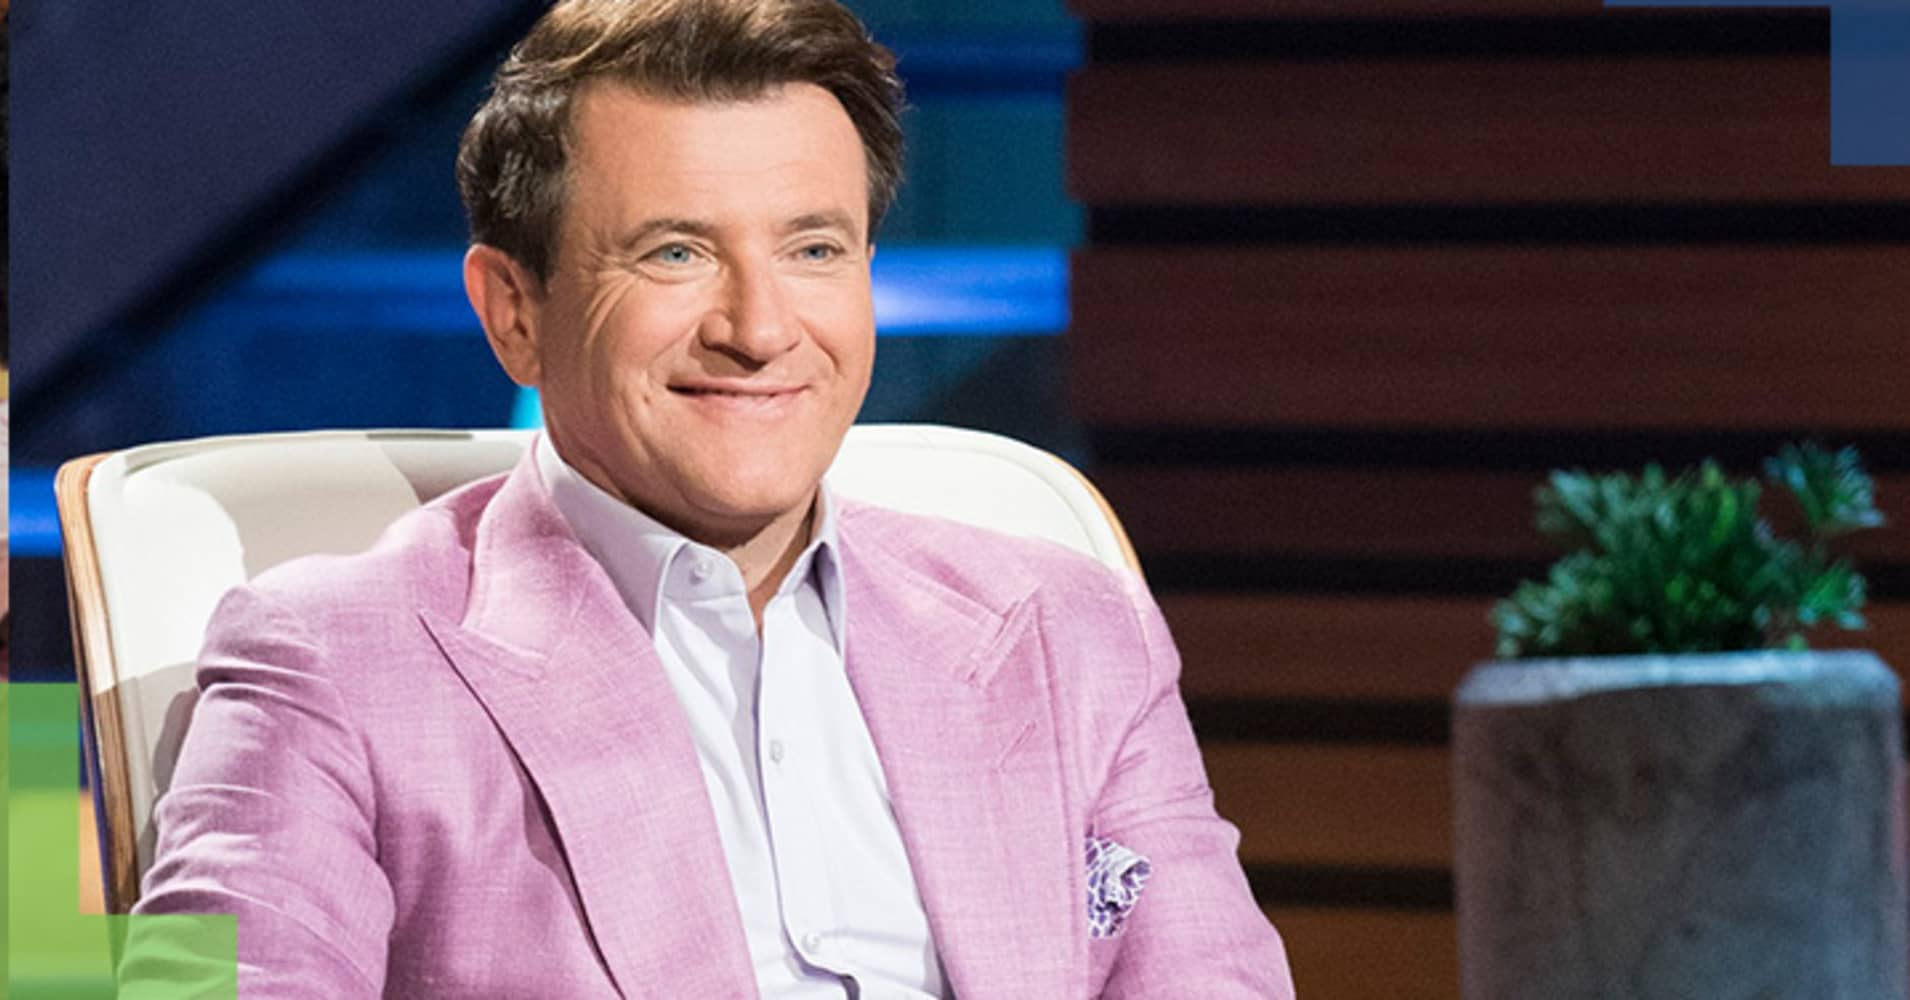 Shark Tank Star Robert Herjavecs Big Splurge After Getting Rich